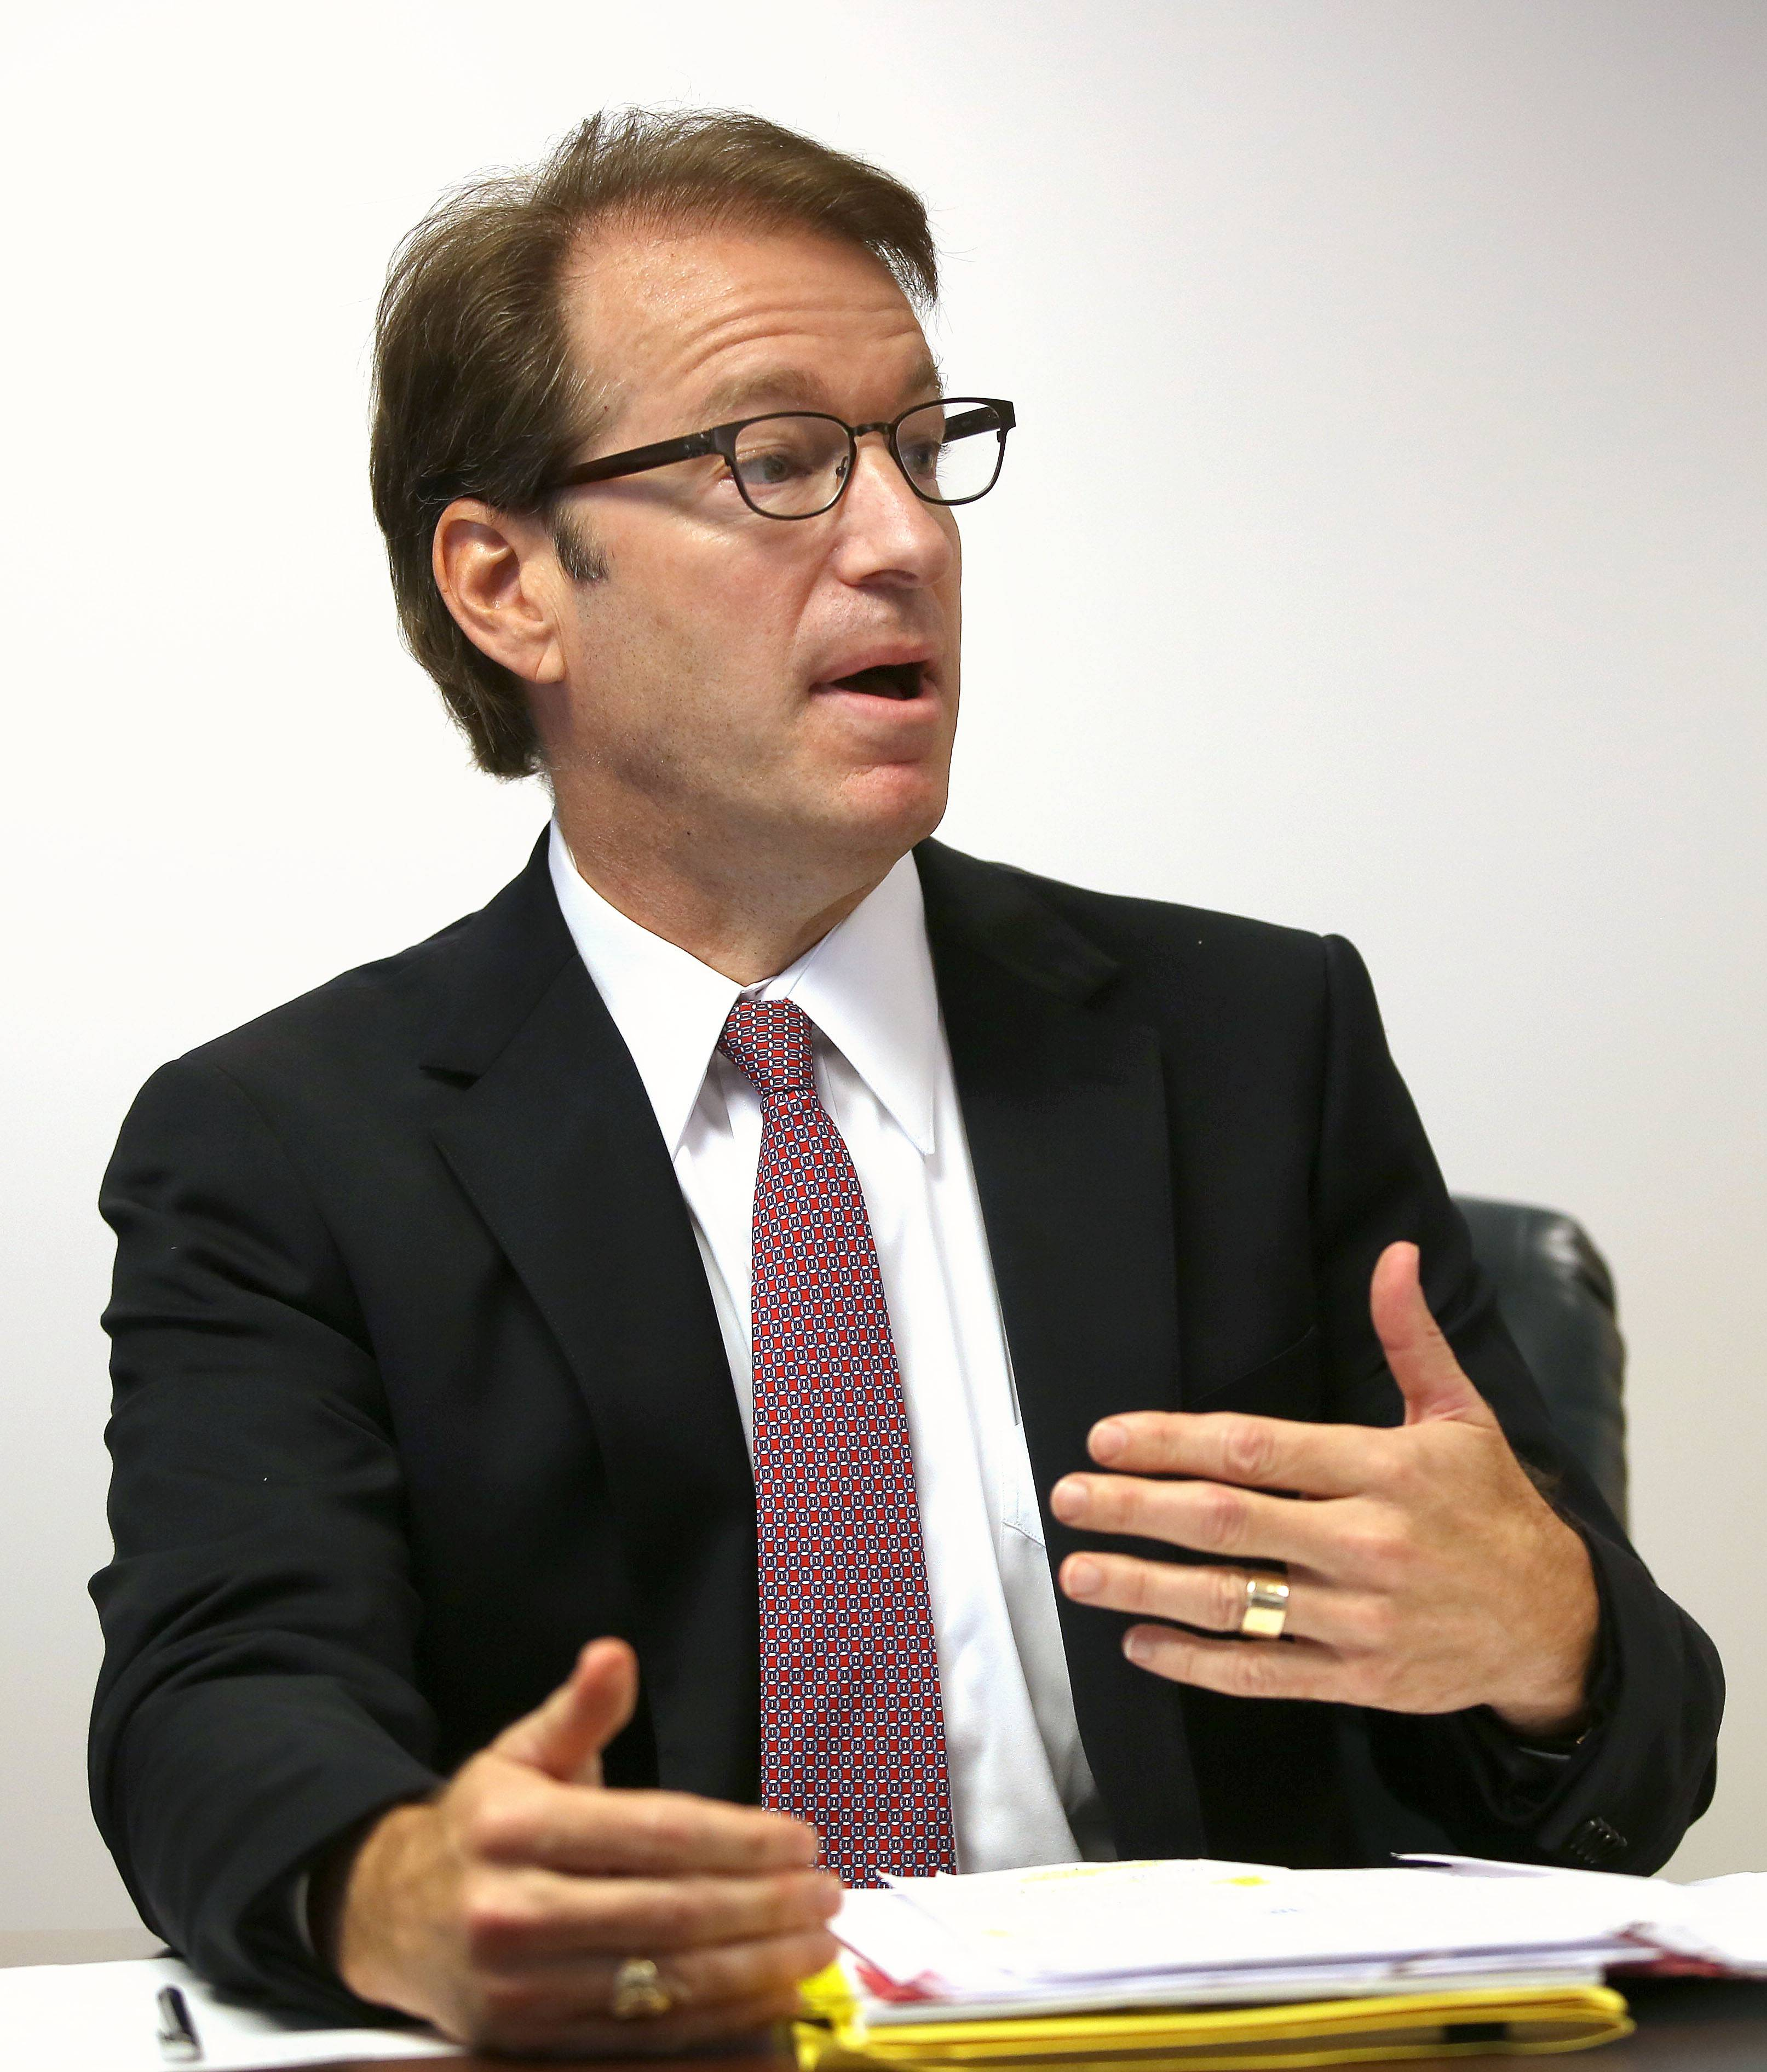 Republican U.S. Rep. Peter Roskam, who is running for re-election in the 6th U.S. Congressional District, speaks during a meeting with the Daily Herald editorial board Monday.